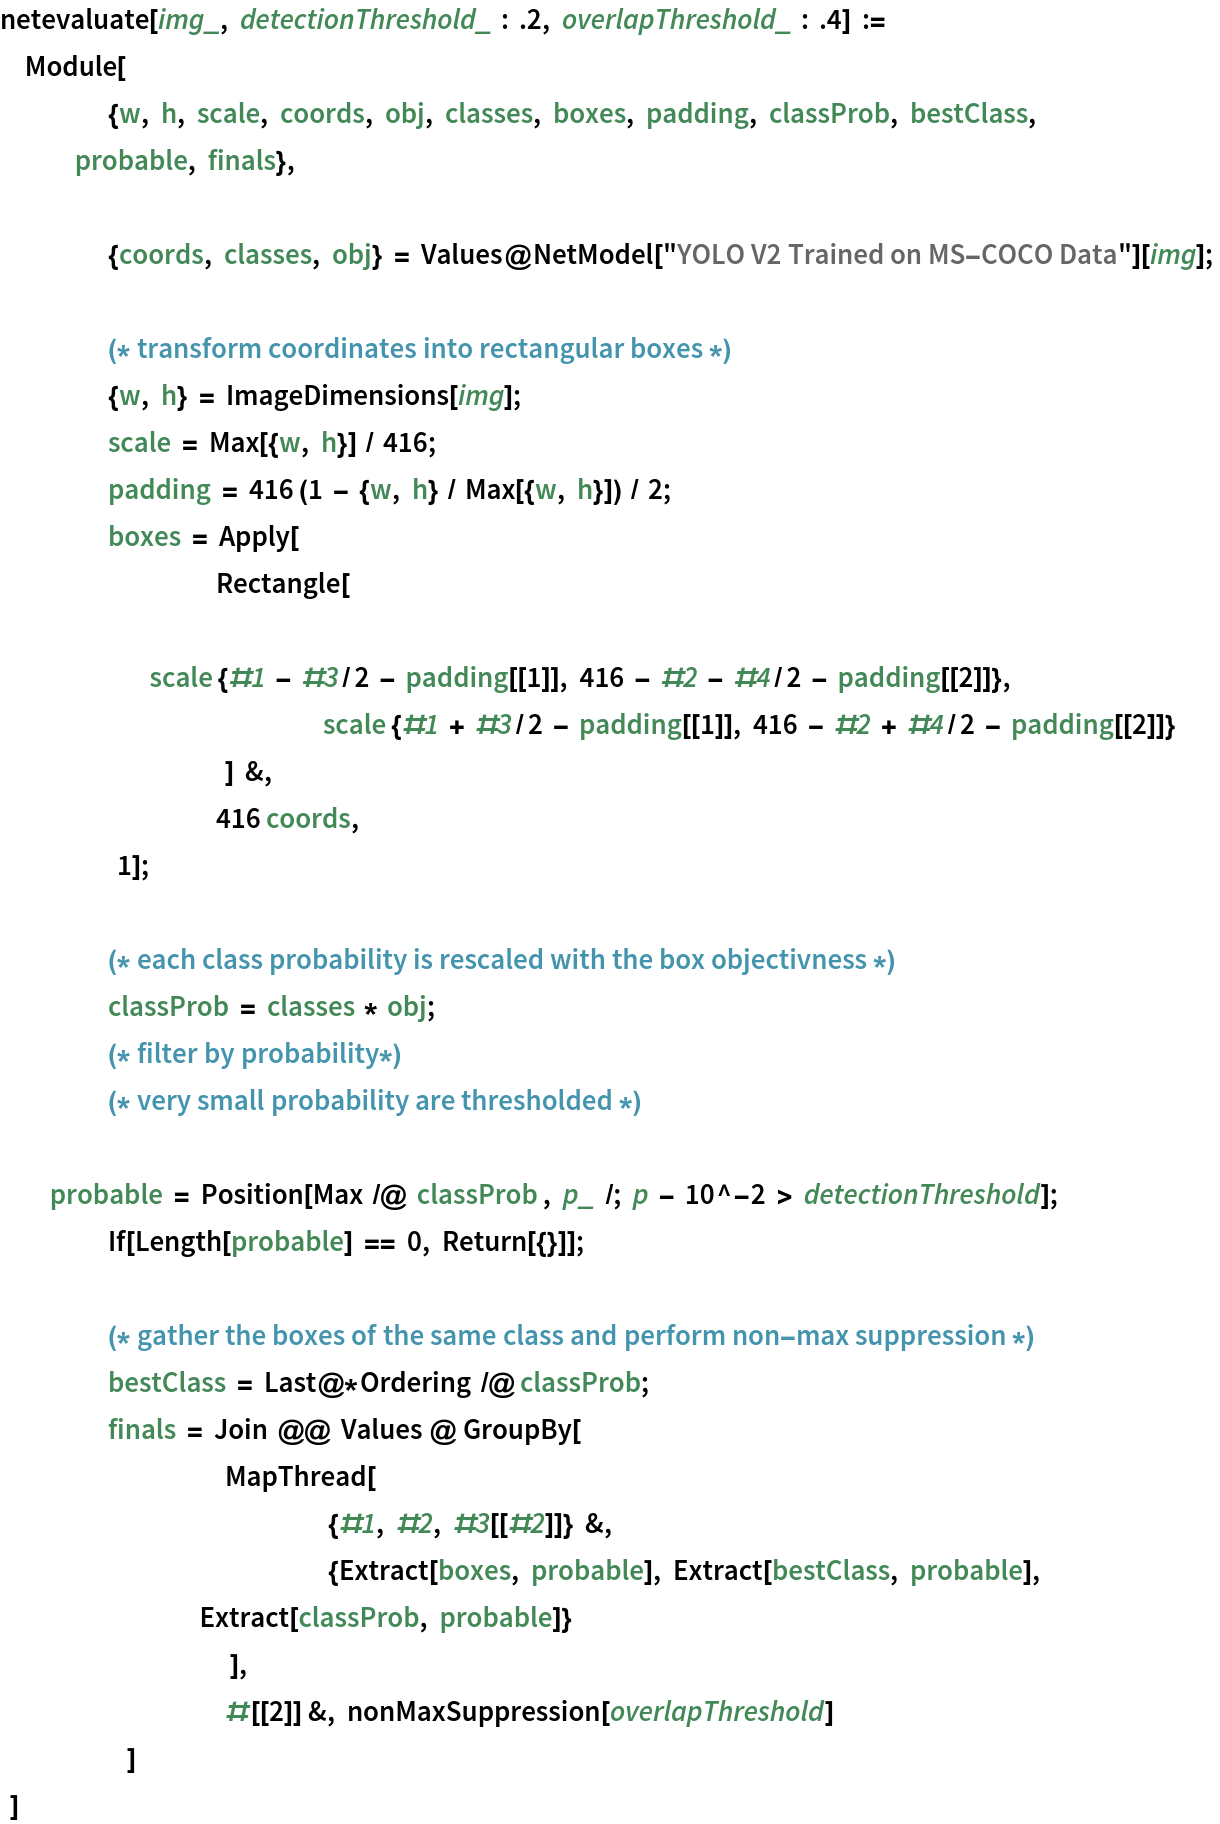 """netevaluate[img_, detectionThreshold_ : .2, overlapThreshold_ : .4] := Module[     {w, h, scale, coords, obj, classes, boxes, padding, classProb, bestClass, probable, finals}, {coords, classes, obj} = Values@NetModel[""""YOLO V2 Trained on MS-COCO Data""""][img]; (* transform coordinates into rectangular boxes *)     {w, h} = ImageDimensions[img];     scale = Max[{w, h}] / 416;     padding = 416 (1 - {w, h} / Max[{w, h}]) / 2;     boxes = Apply[         Rectangle[ scale {#1 - #3/2 - padding[[1]], 416 - #2 - #4/2 - padding[[2]]}, scale {#1 + #3/2 - padding[[1]], 416 - #2 + #4/2 - padding[[2]]}             ] &,         416 coords,         1]; (* each class probability is rescaled with the box objectivness *) \     classProb = classes * obj;     (* filter by probability*)     (* very small probability are thresholded *) probable = Position[Max /@ classProb , p_ /; p - 10^-2 > detectionThreshold]; If[Length[probable] == 0, Return[{}]]; (* gather the boxes of the same class and perform non-   max suppression *)     bestClass = Last@*Ordering /@ classProb;     finals = Join @@ Values @ GroupBy[             MapThread[               {#1, #2, #3[[#2]]} &,               {Extract[boxes, probable], Extract[bestClass, probable], Extract[classProb, probable]}               ],             #[[2]] &, nonMaxSuppression[overlapThreshold]             ]     ]"""